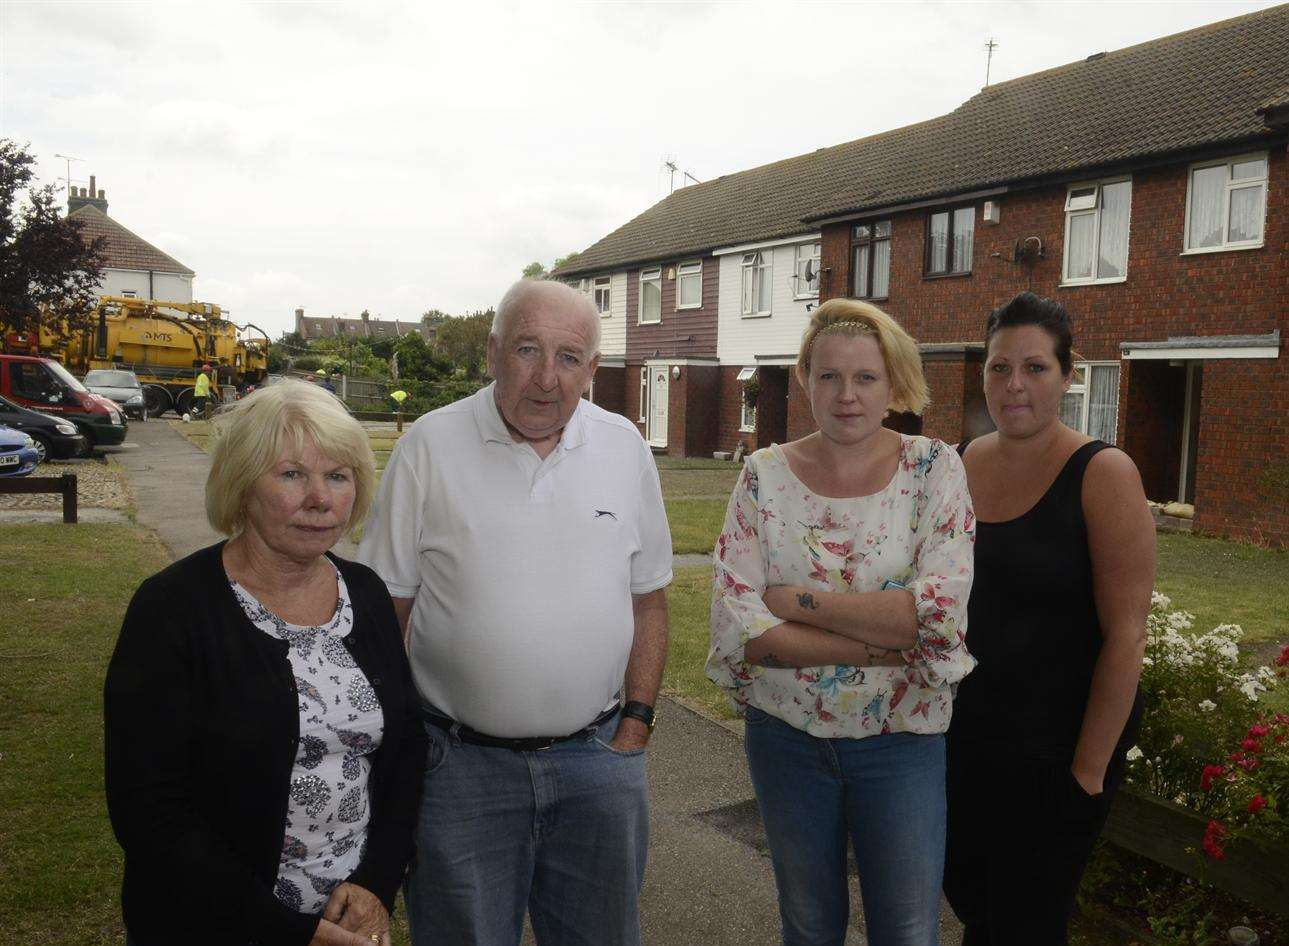 Carole and Eric Tress, Carrieann Gibbons and Stacey Tailor whose gardens were flooded in Castlemere Avenue, Queenborough